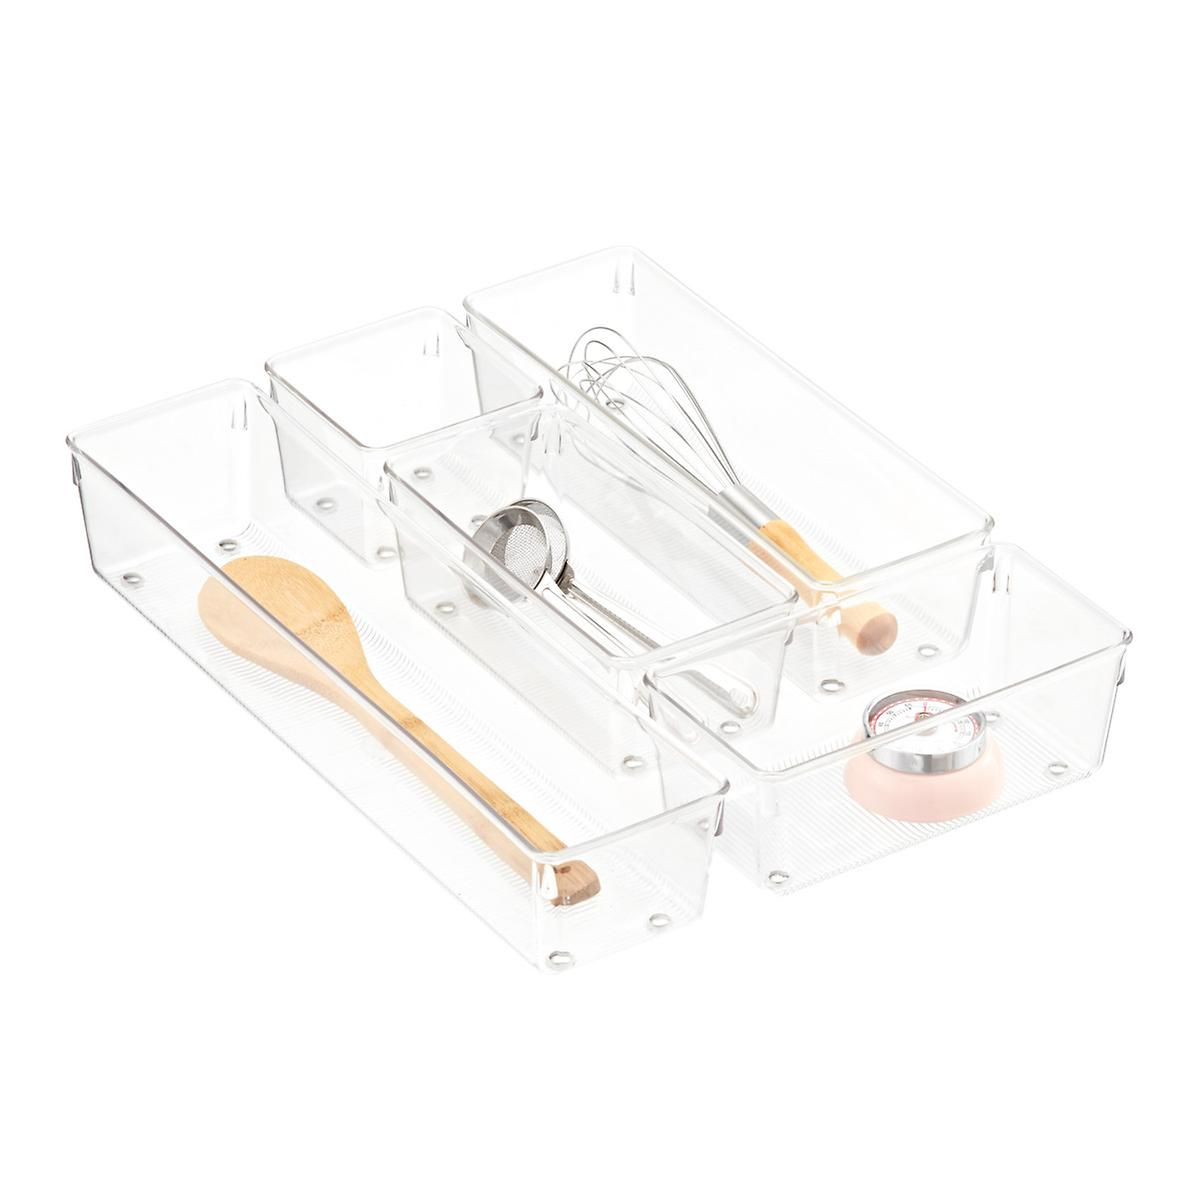 Kitchen Drawer Organizer Drawer Organizers Utensil Holders Silverware Trays The